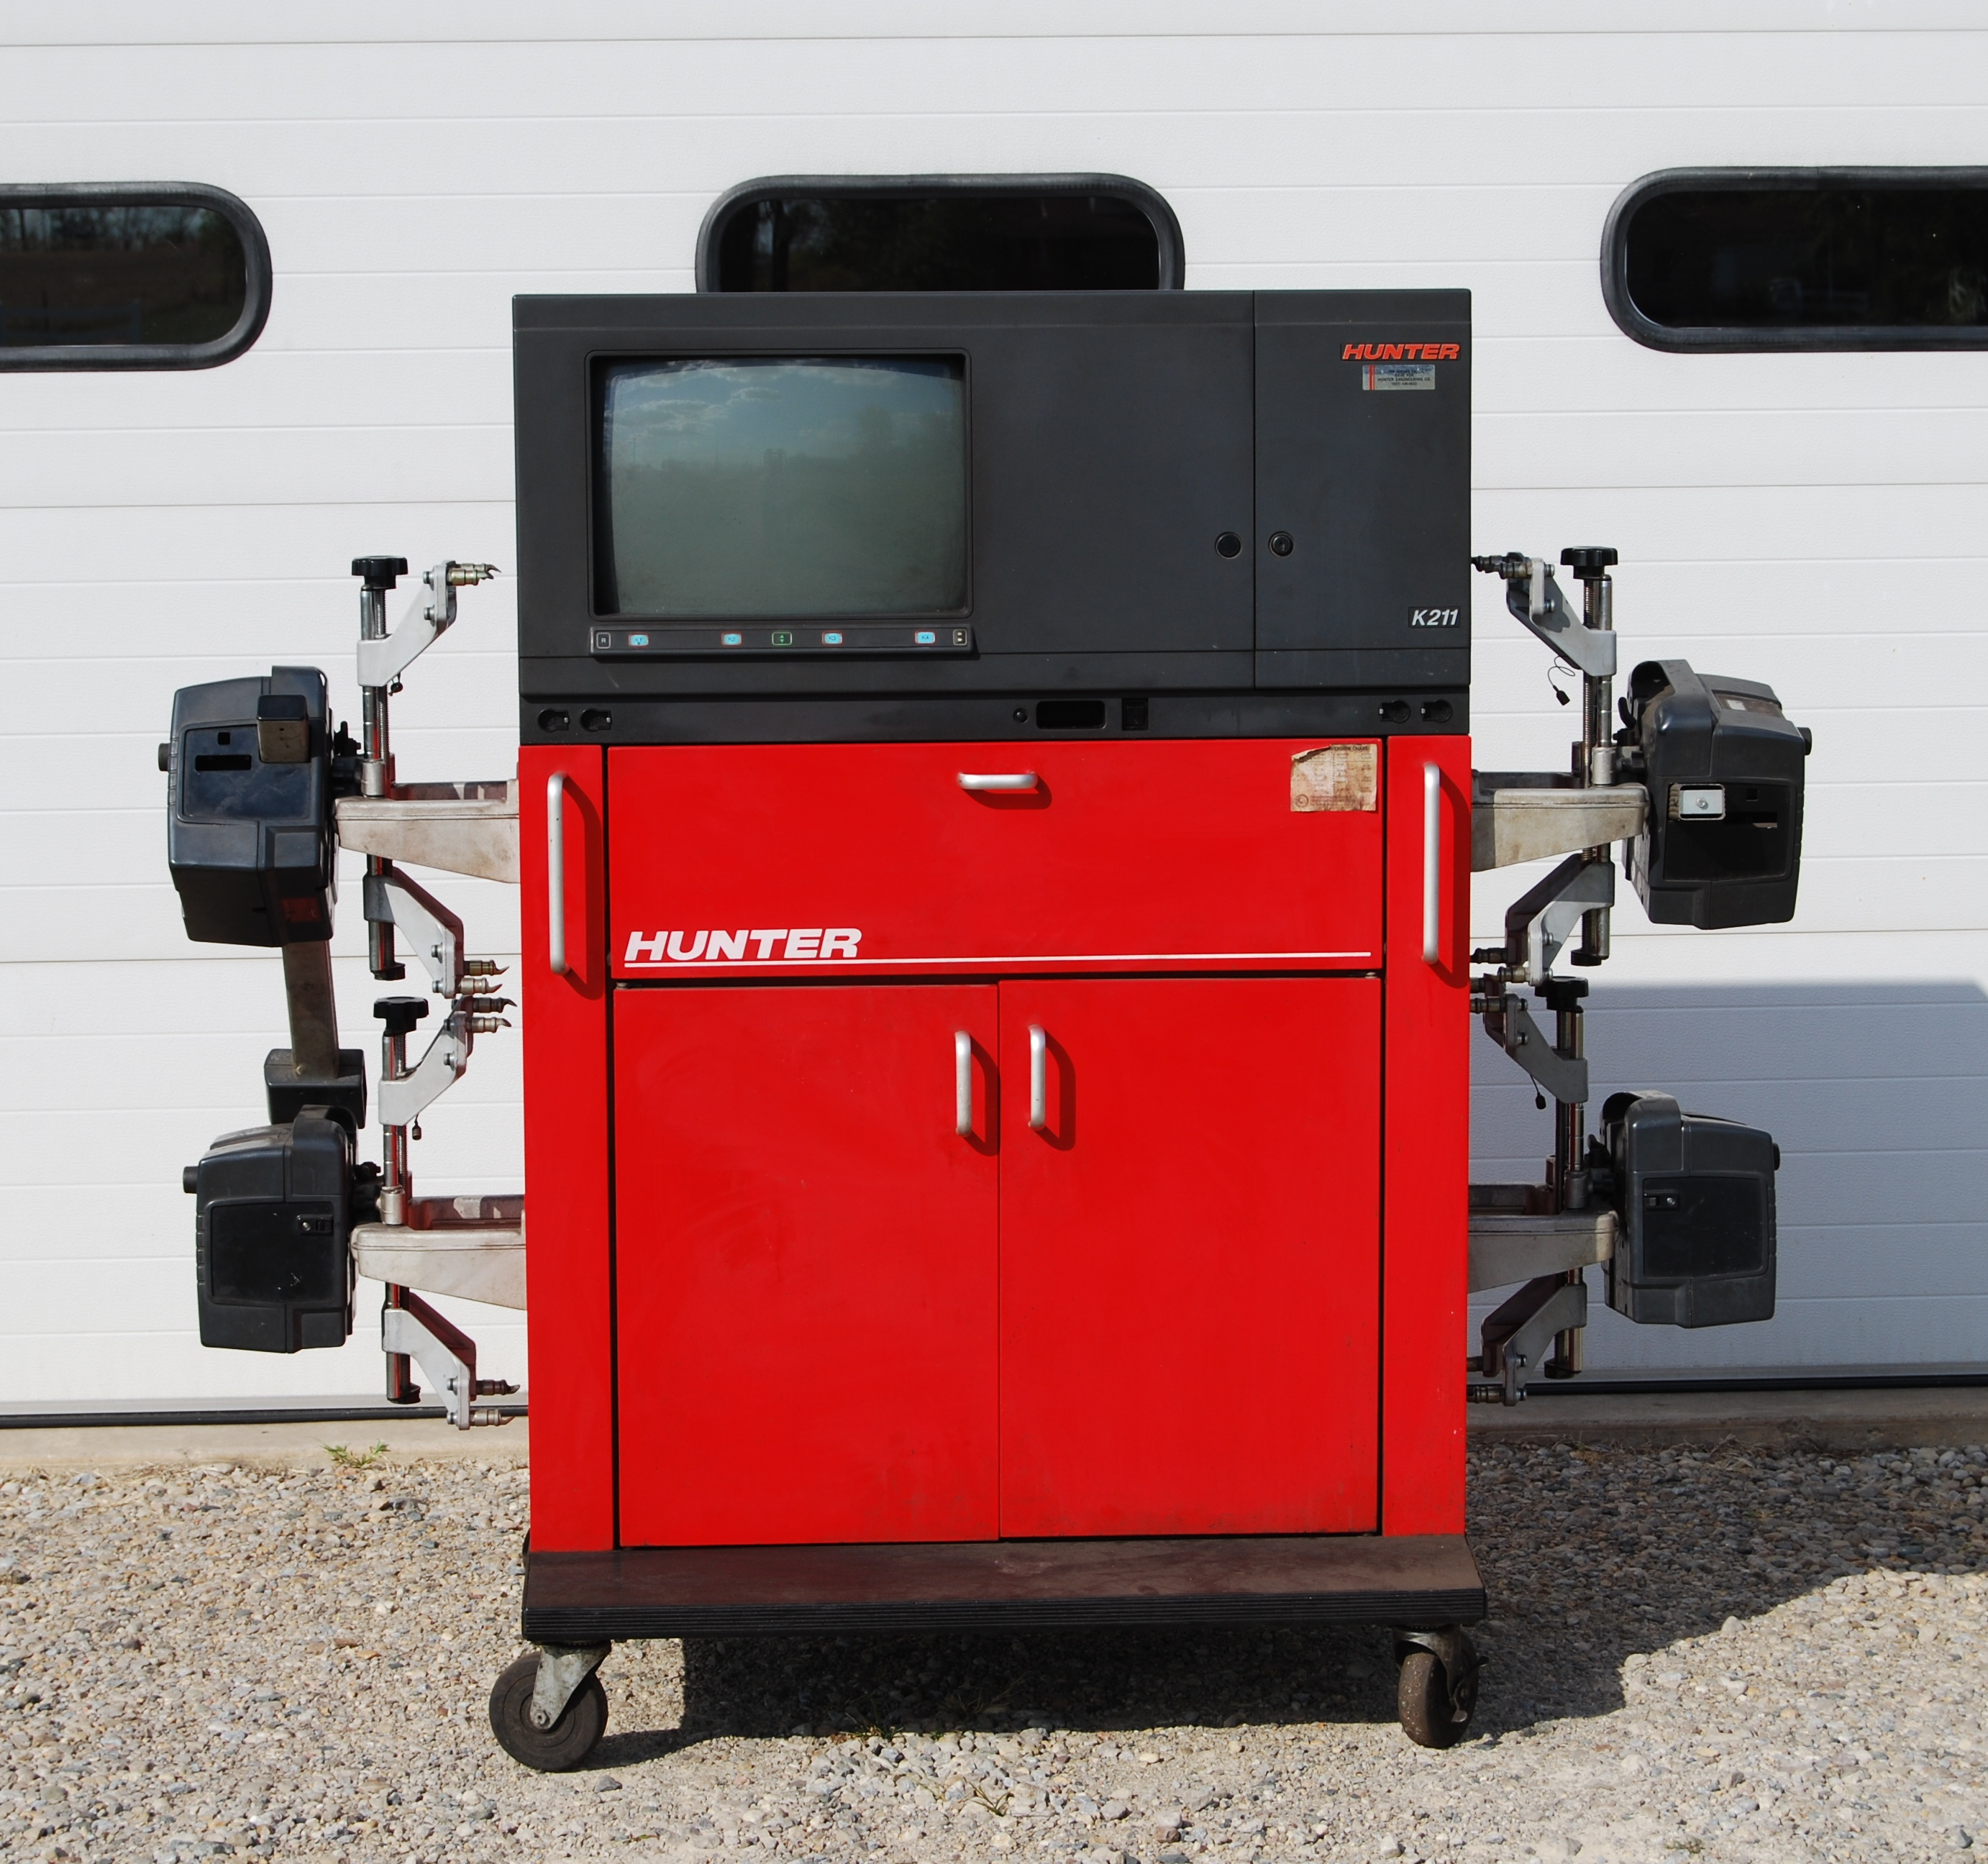 Hunter Computerized 4 Wheel Aligner Hunter Model K211 With mobile cabinet,  4 laser optical sensors, self centering wheel clamps, remote console  indicator, ...